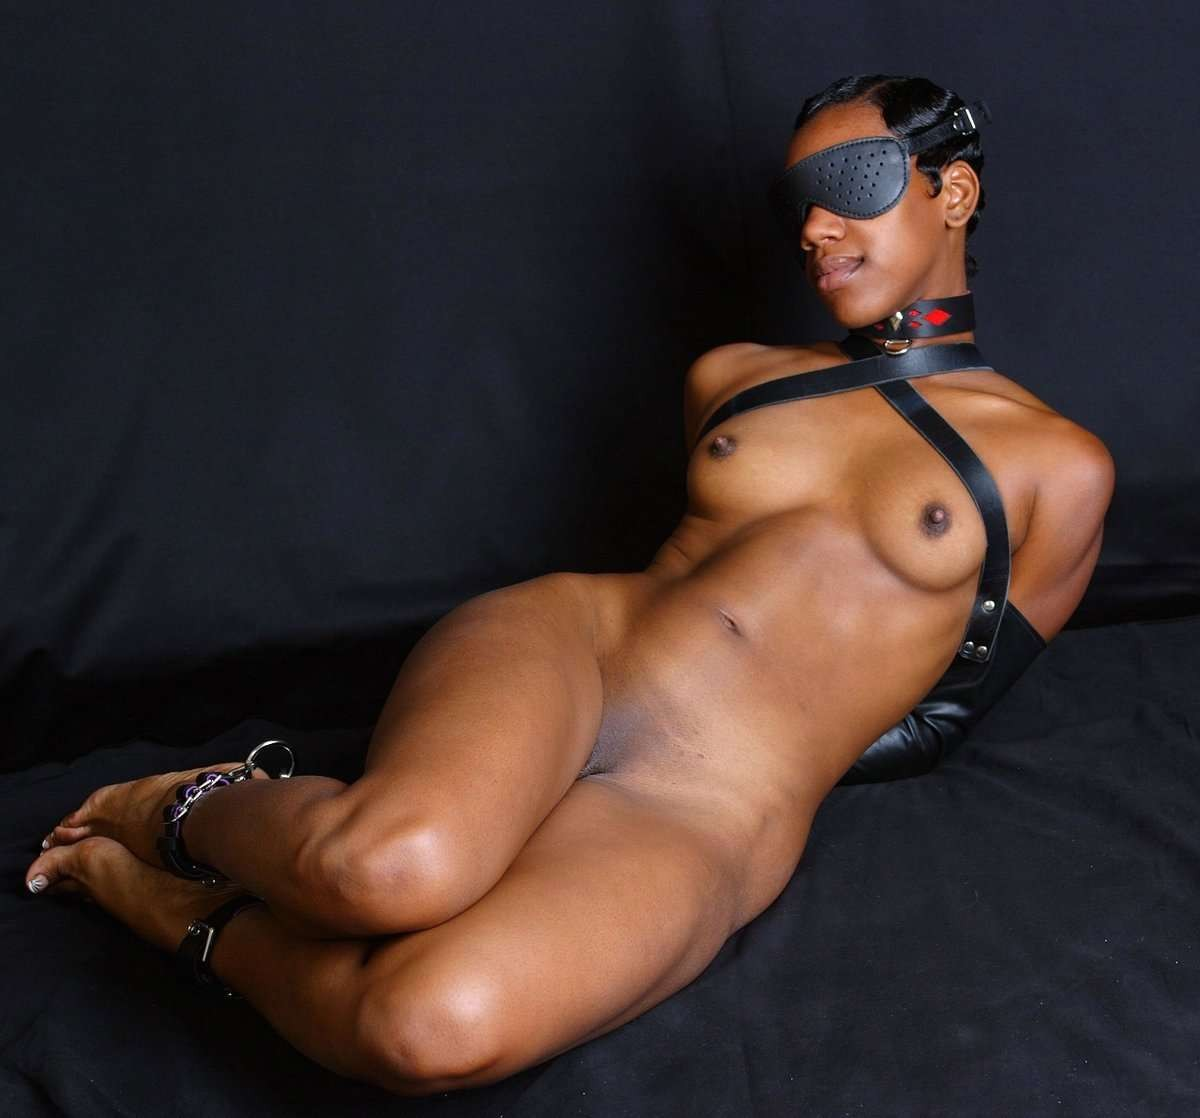 ebony bondage Black